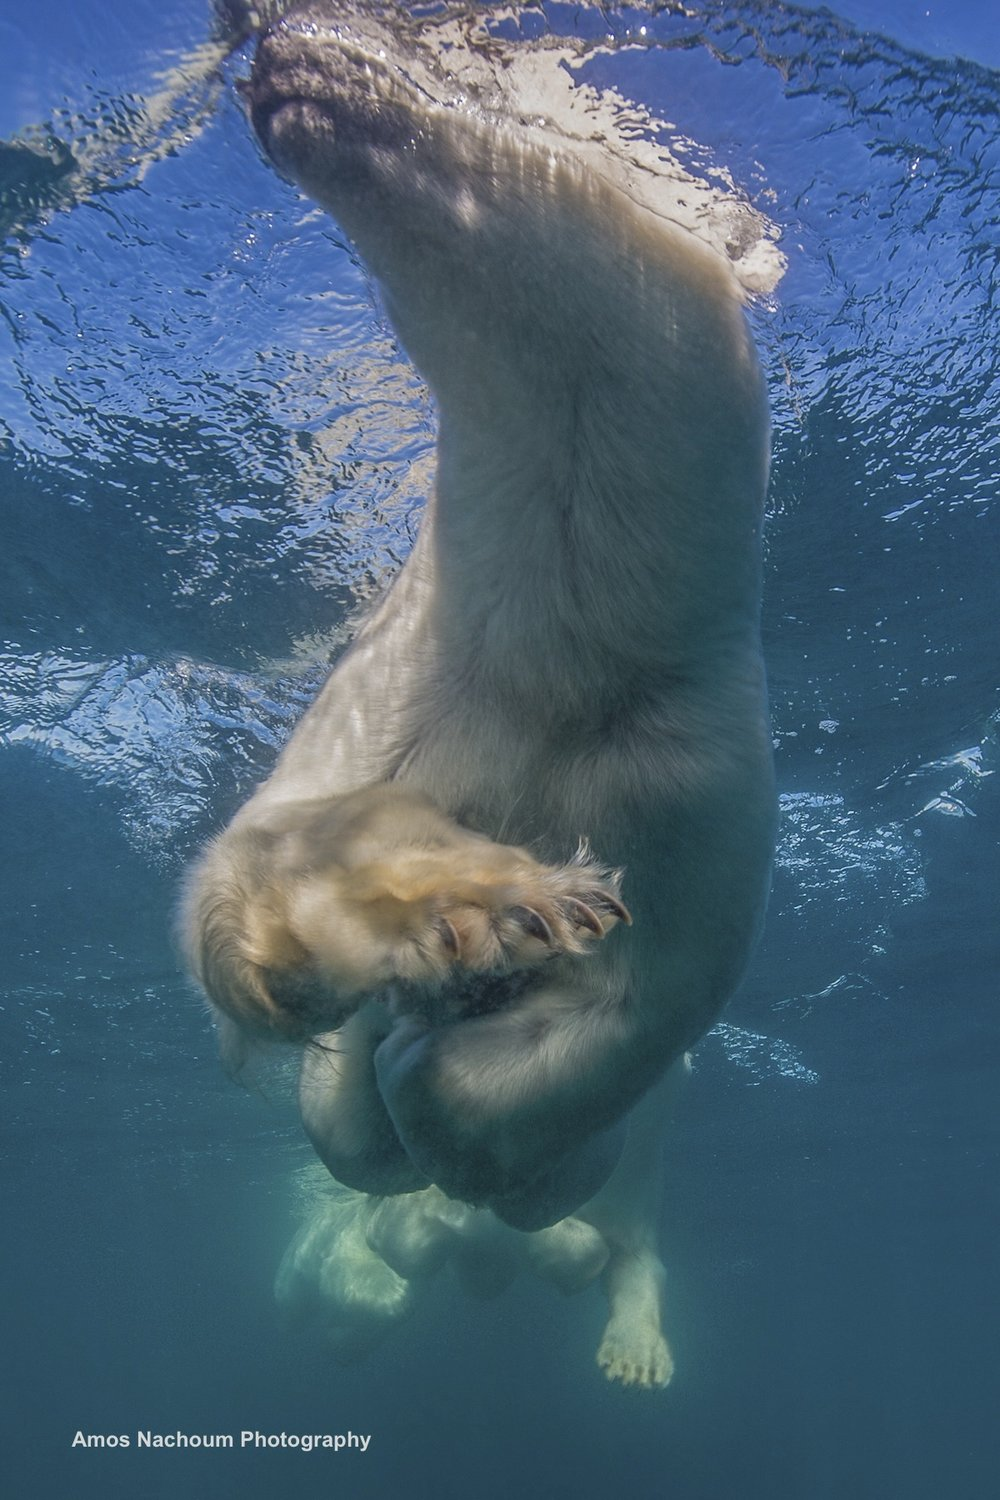 """THE TREMENDOUS PAWS OF THE POLAR BEAR WERE JUST OVER HEAD, CLOSE ENOUGH FOR A """"HANDSHAKE"""". IMAGE: COURTESY OF ©AMOS NACHOUM PHOTOGRAPHY"""